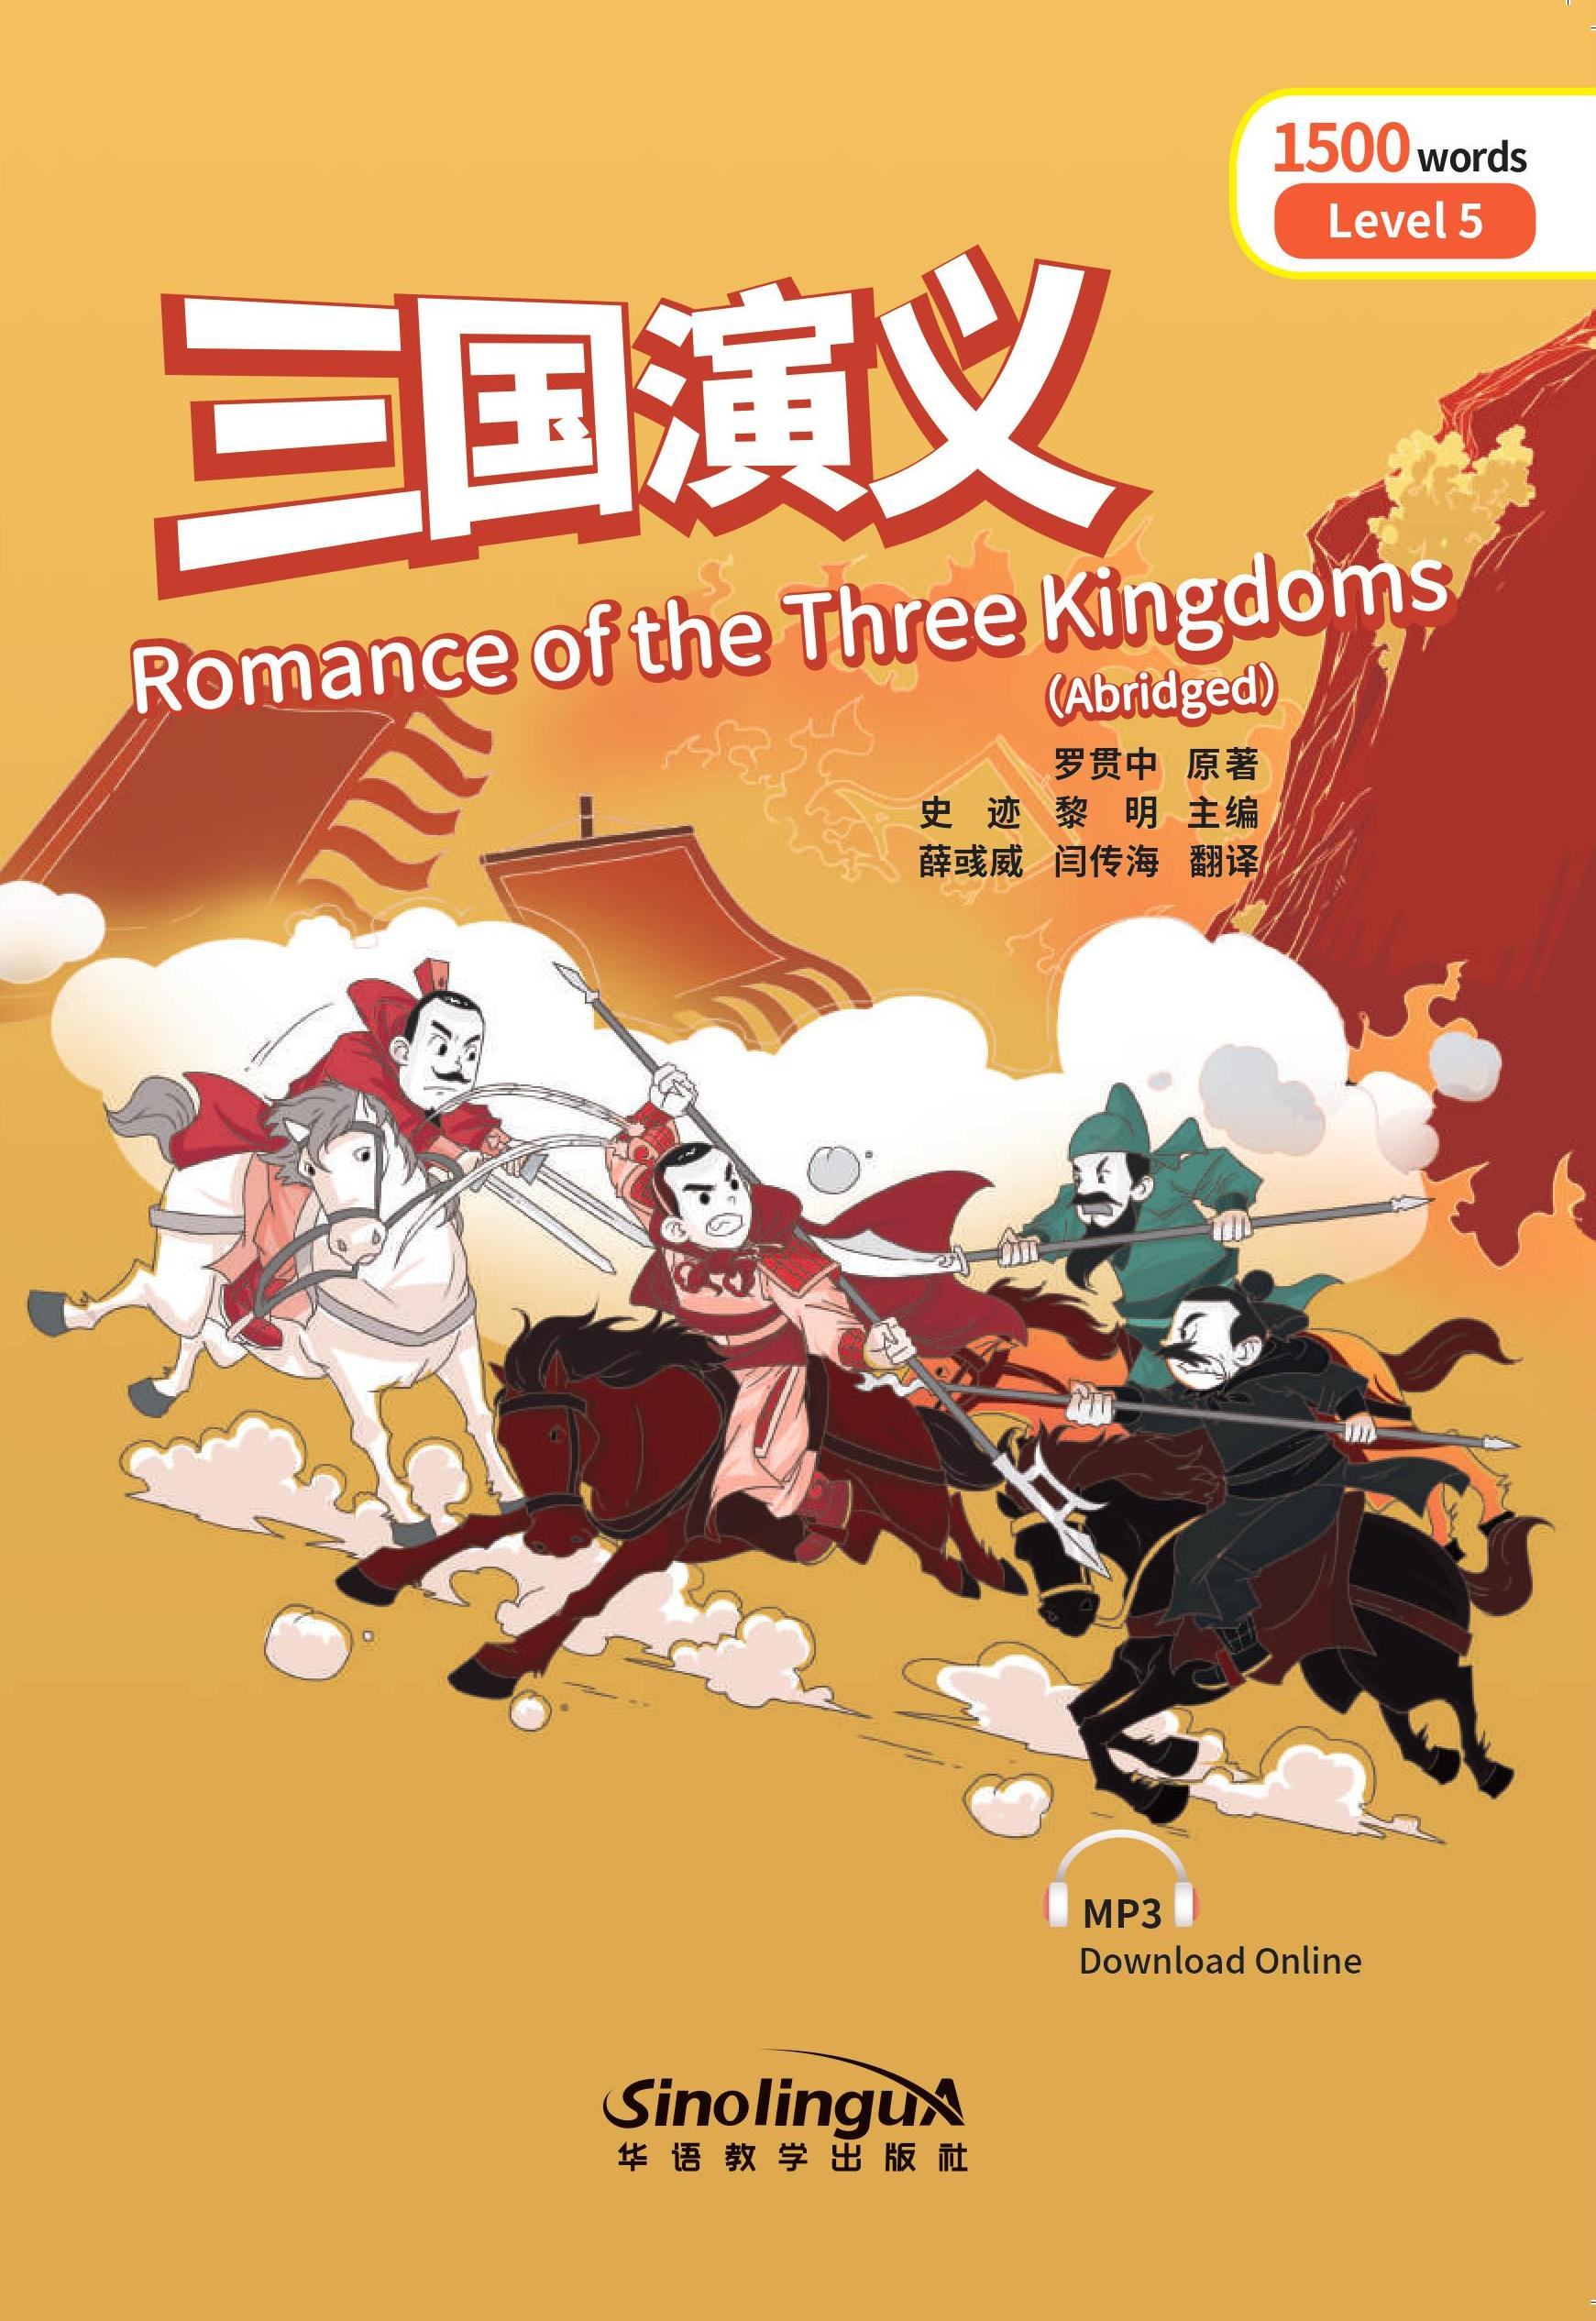 Romance of the Three Kingdoms (Abridged)